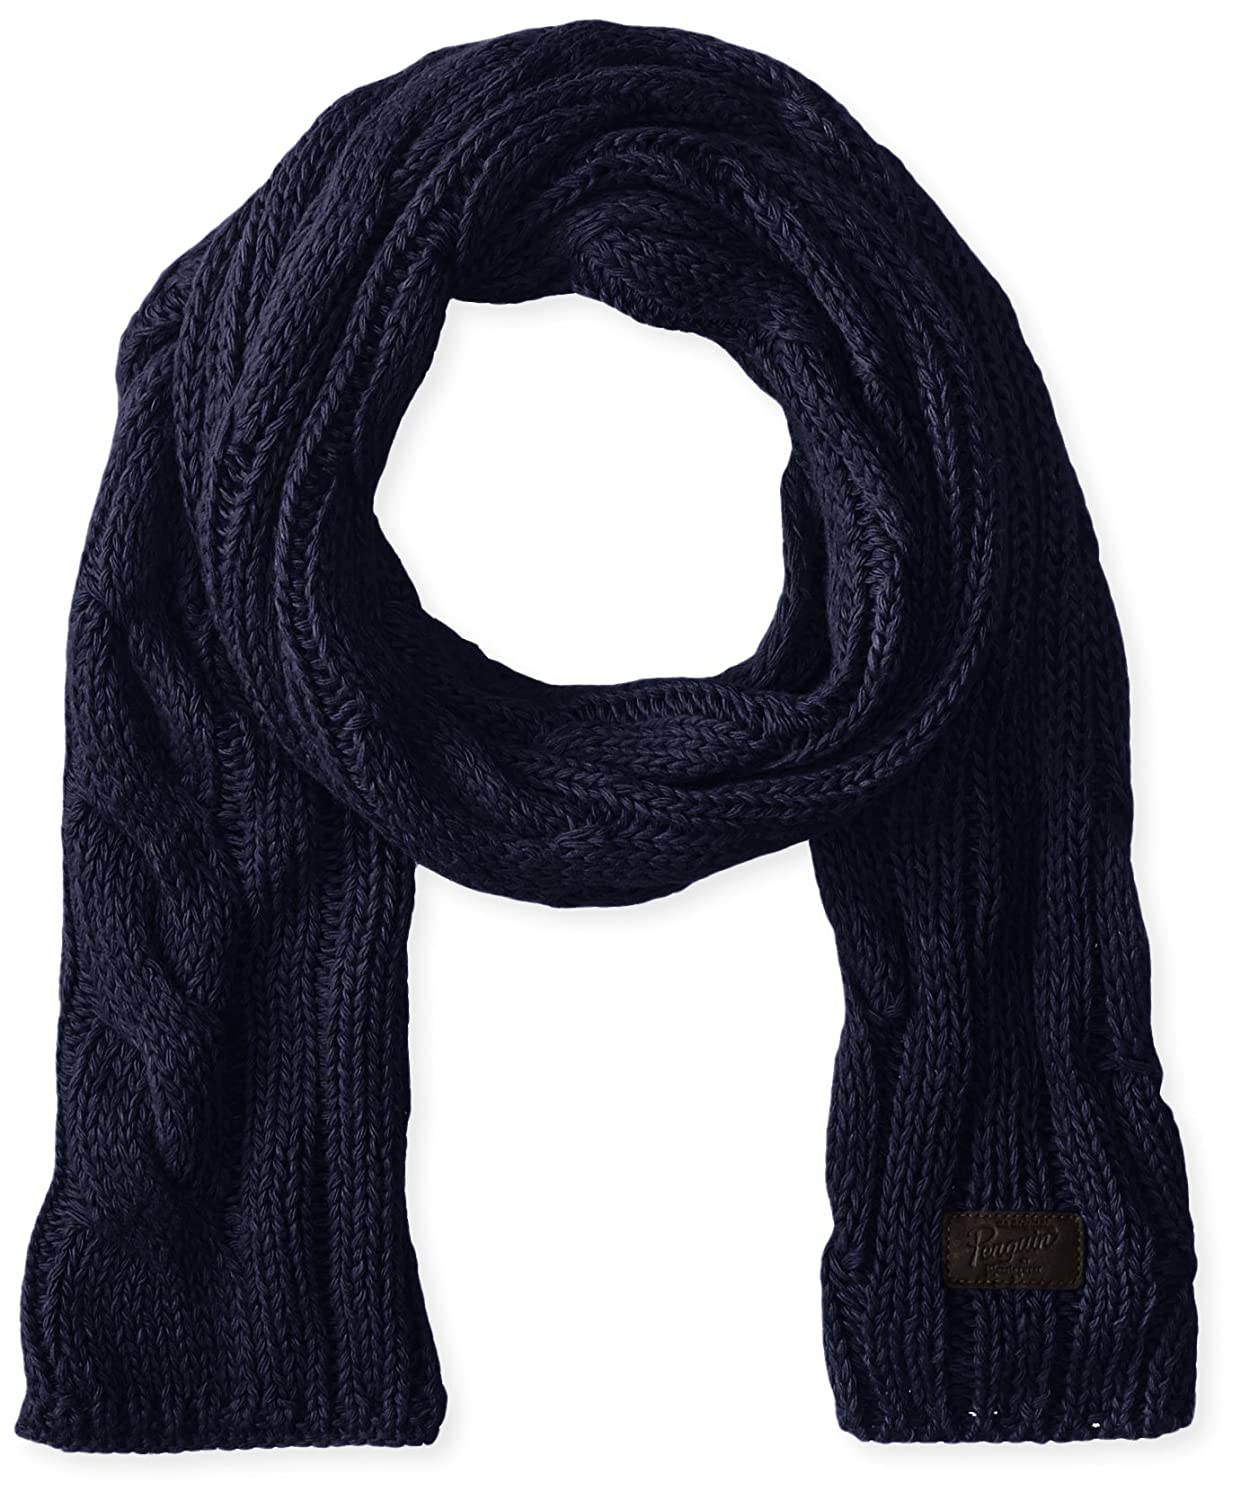 Original Penguin Men's Desmond Scarf Dark Sapphire One Size PNH0389